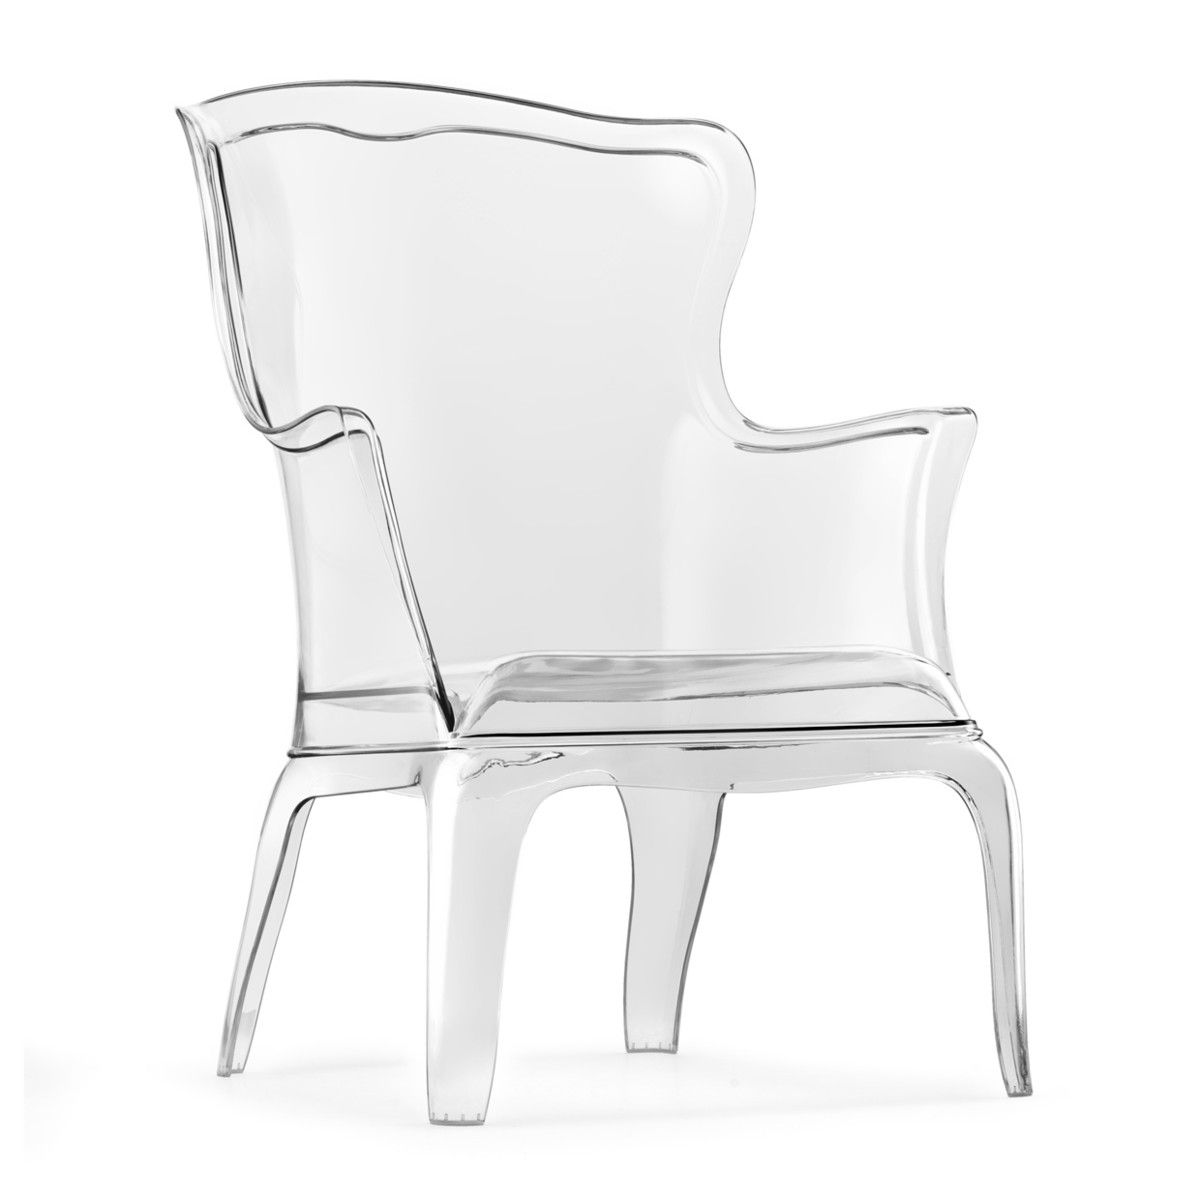 Pasha Armchair Clear My Favorite Color Yes Please I Ll Take 2 Contemporary Lounge Chair Furniture Modern Chairs